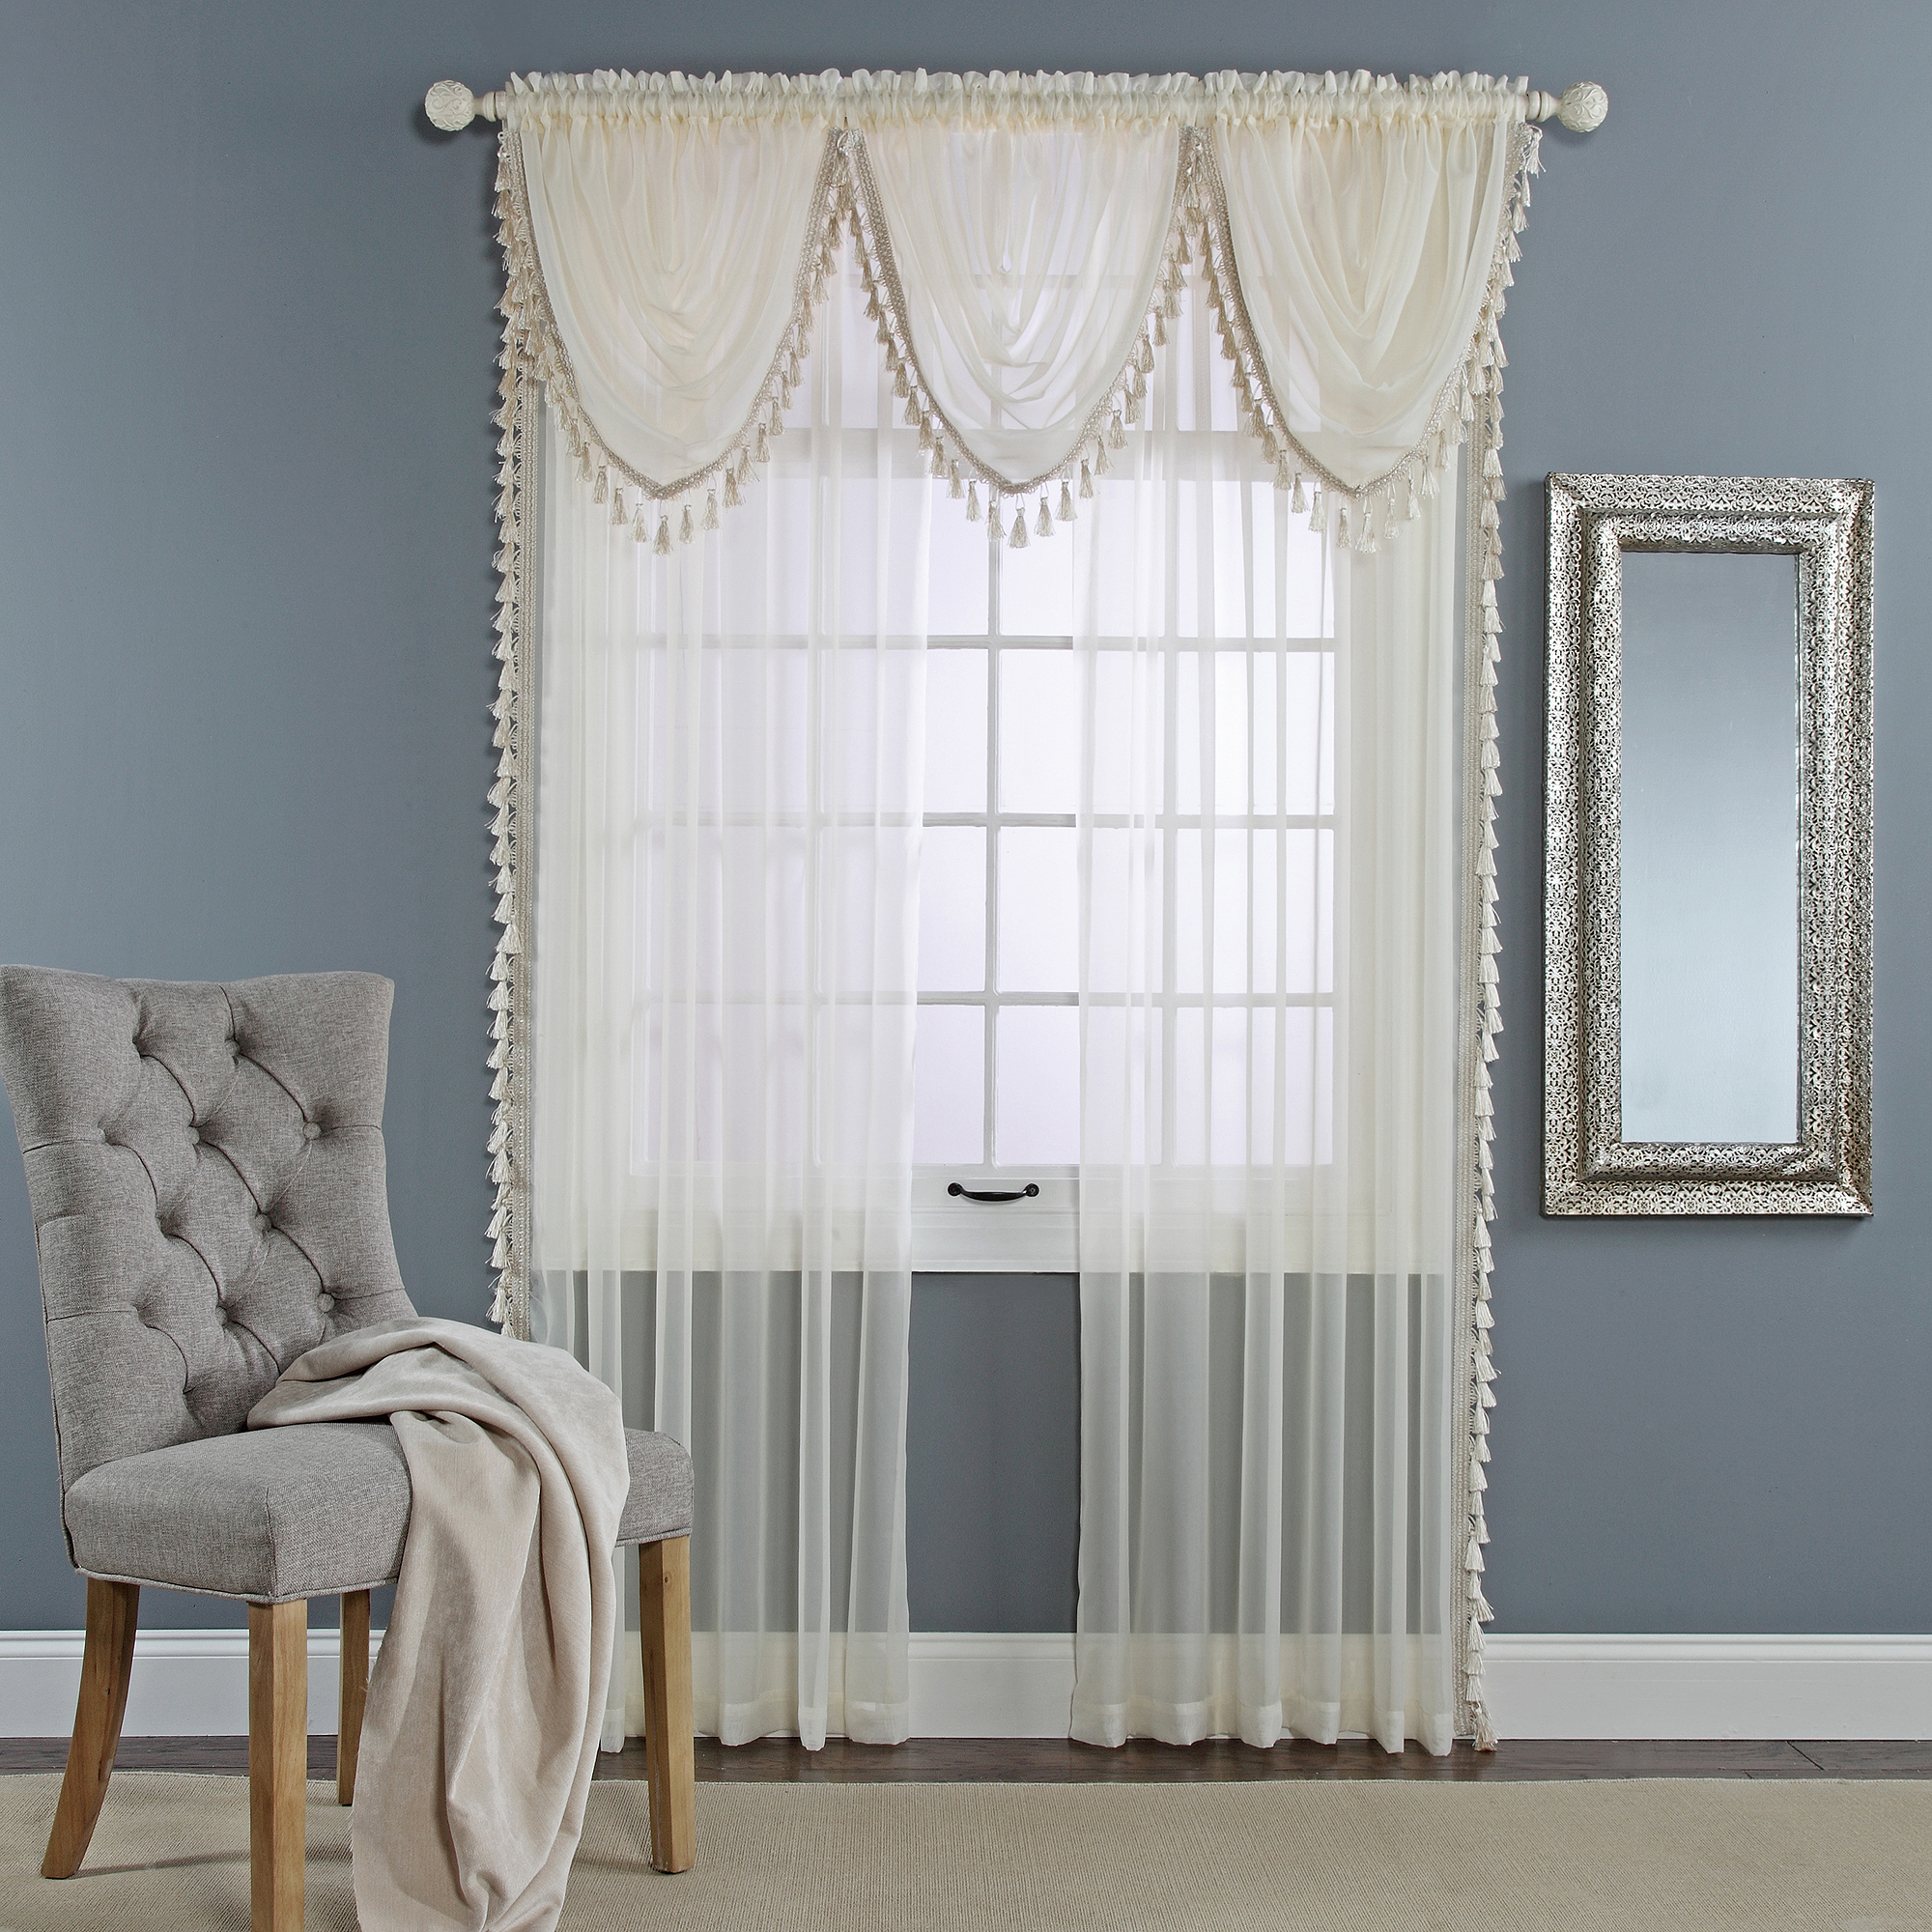 Charlotte Sheer Waterfall Valance with Tassel